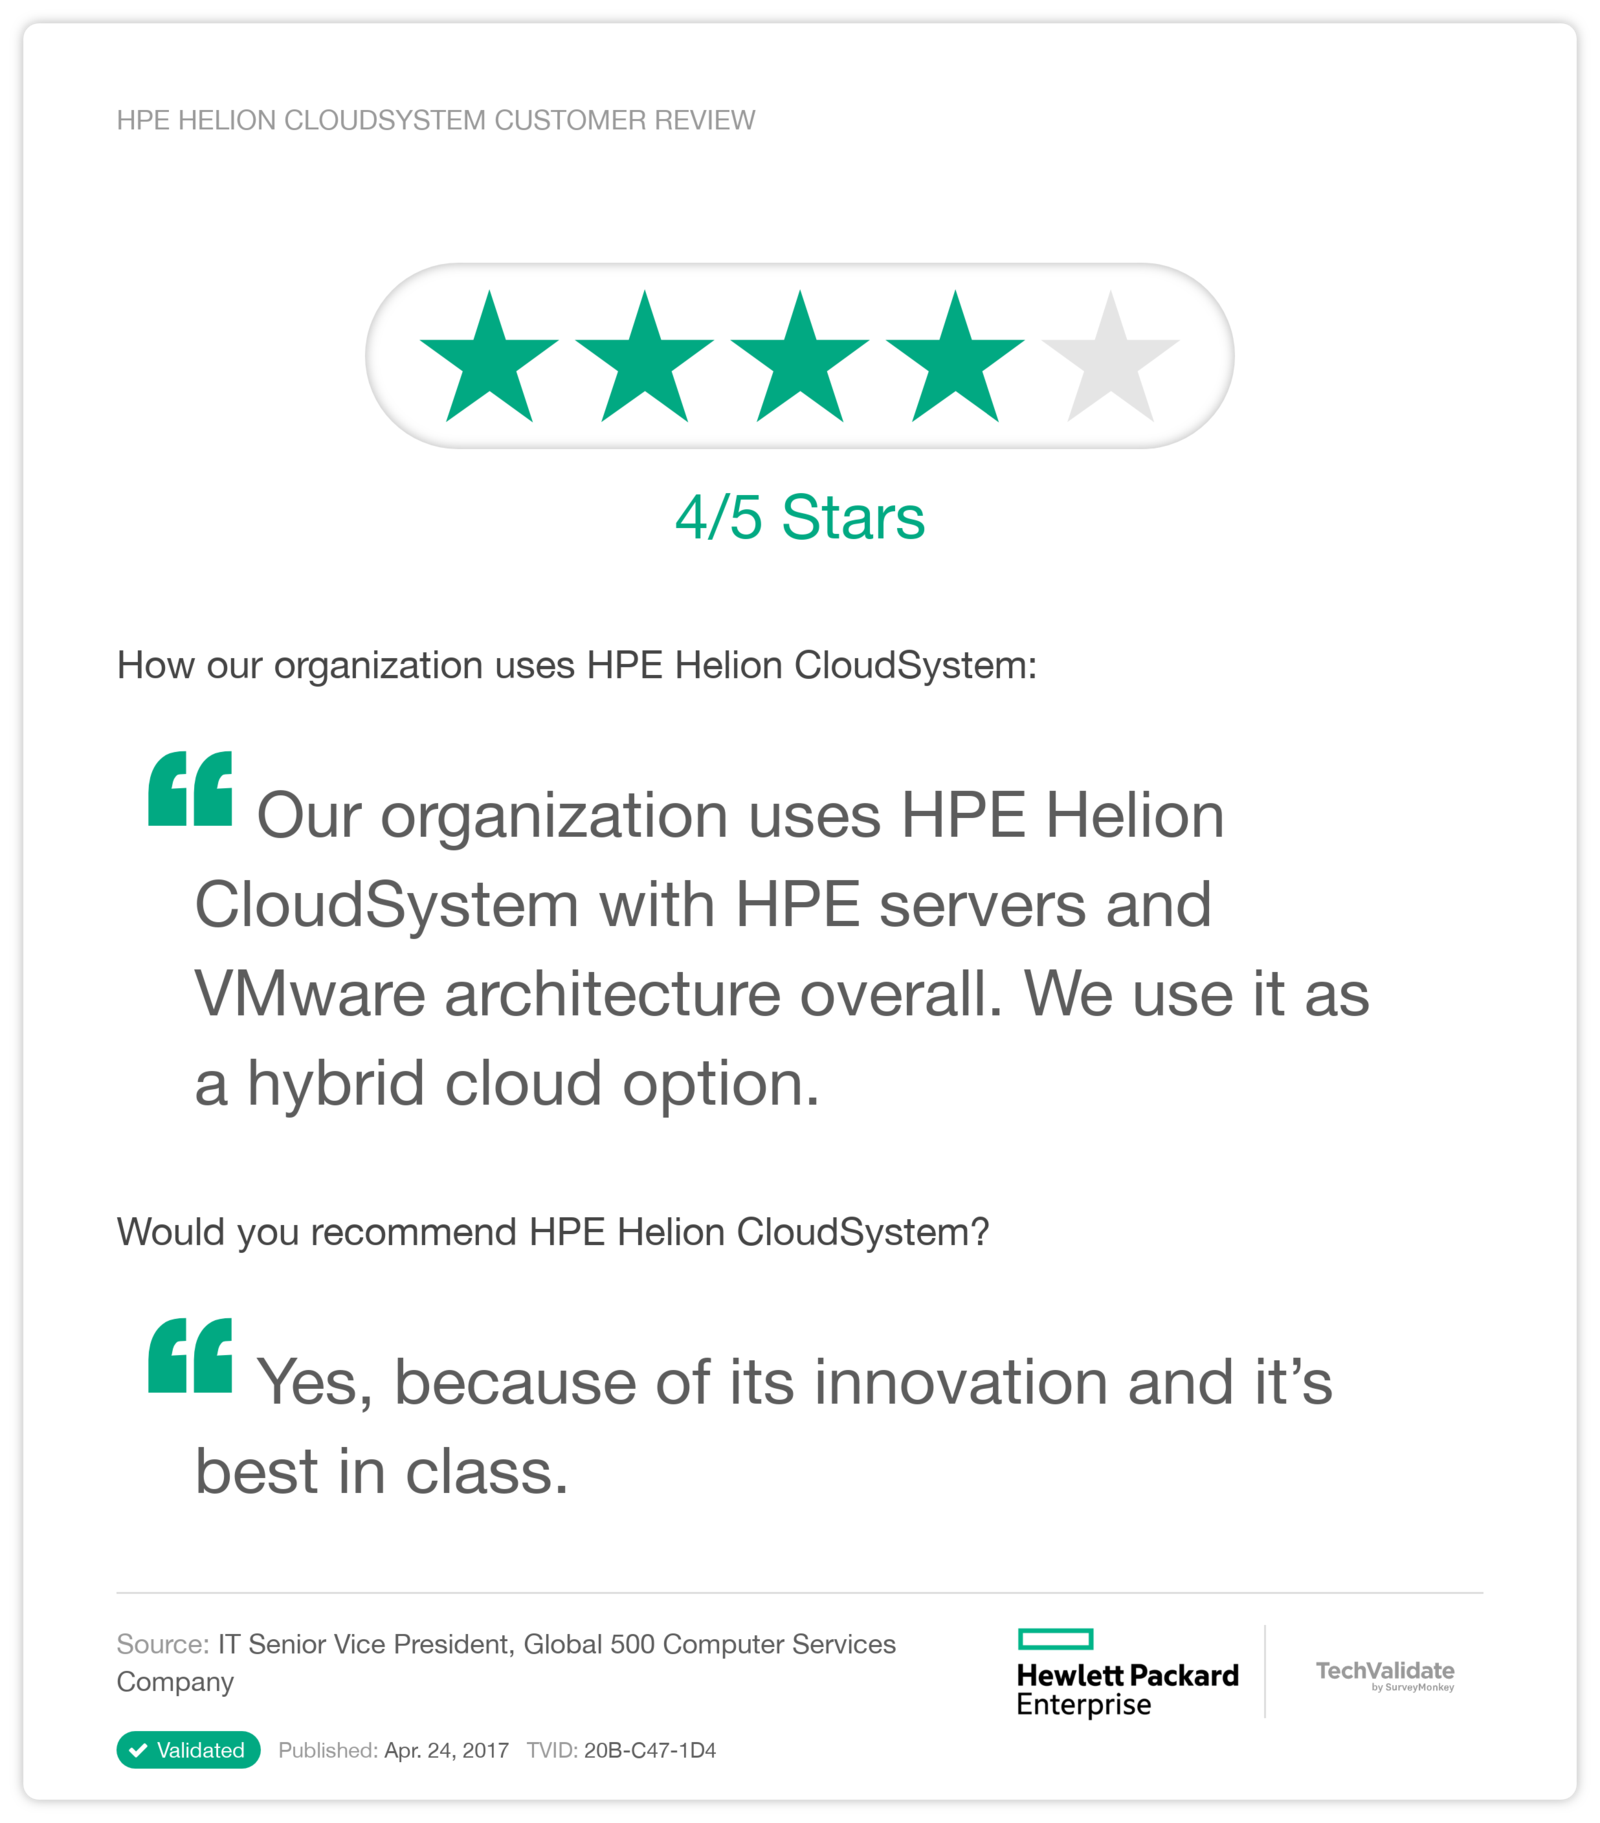 HPE Helion CloudSystem Customer Review